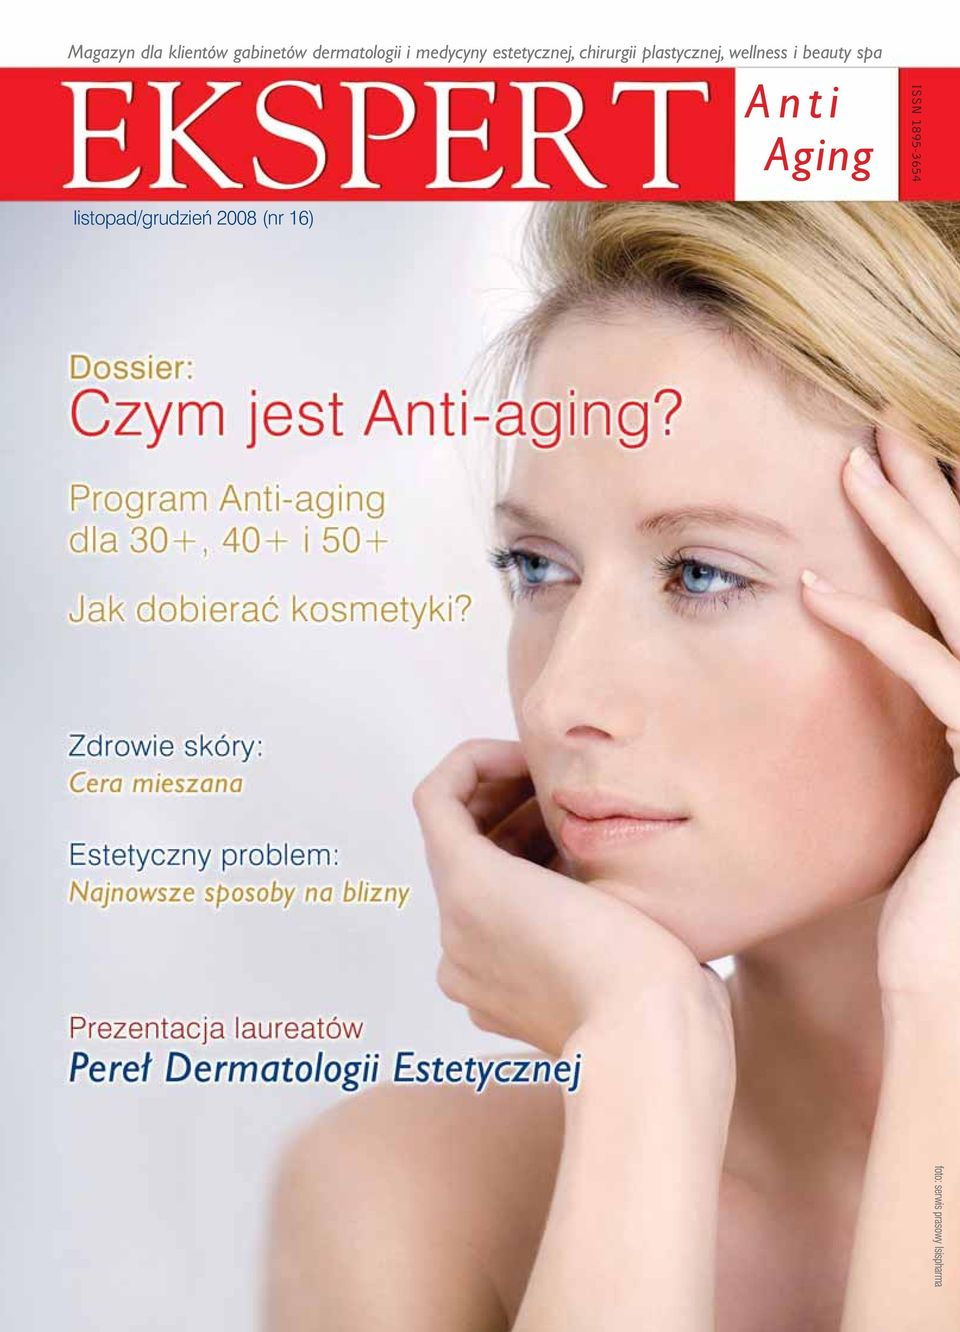 wellness i beauty spa Anti Aging ISSN 1895-3654